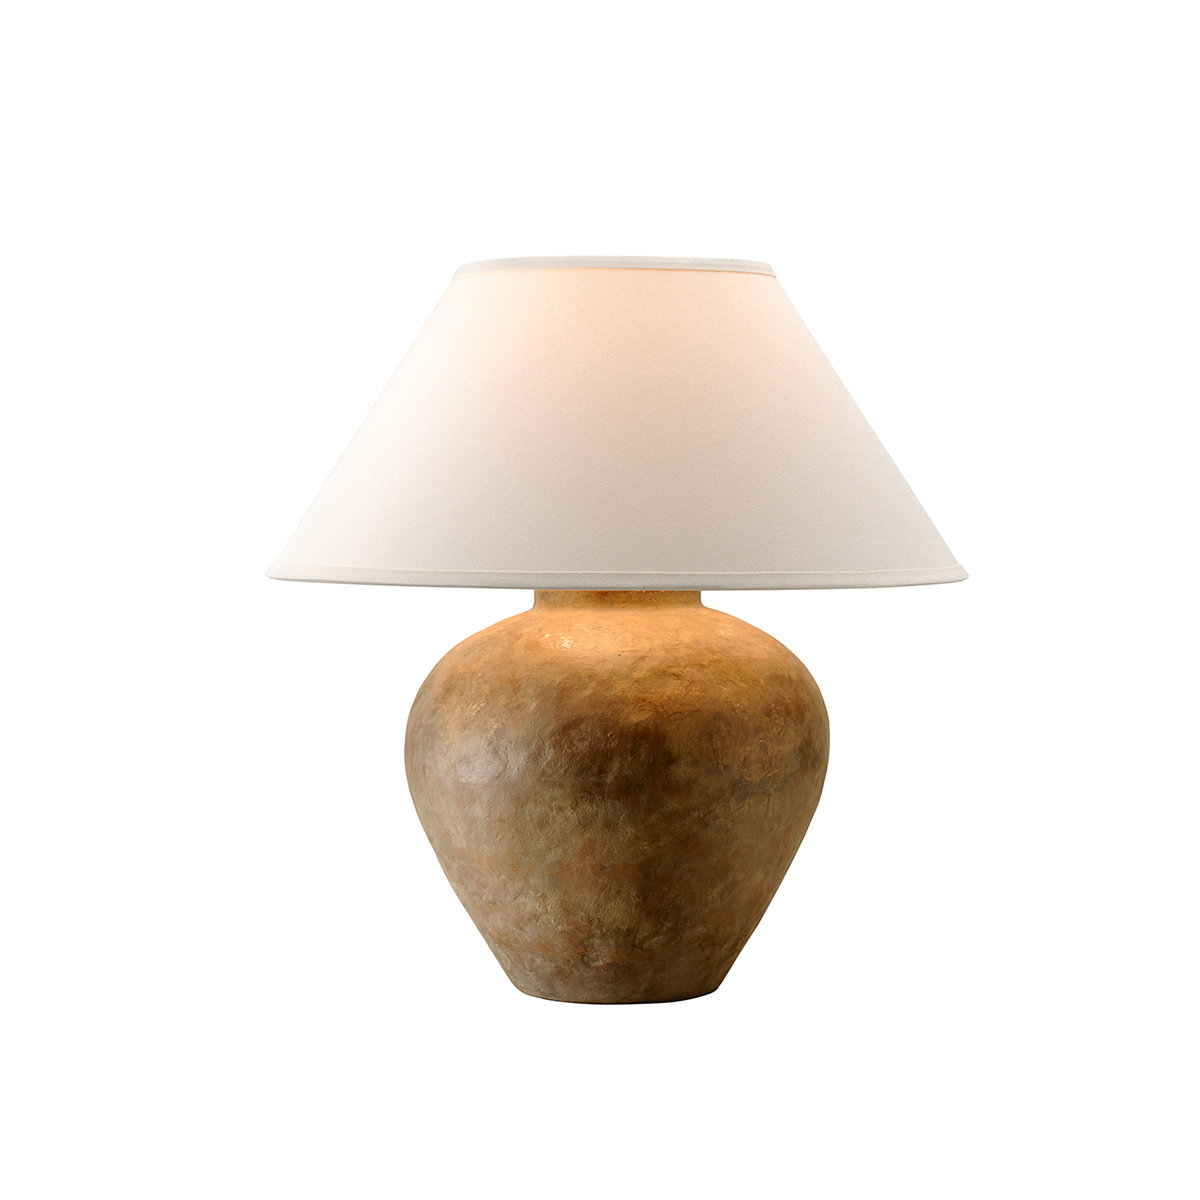 Calabria Stone Table Lamp - Rug & Weave